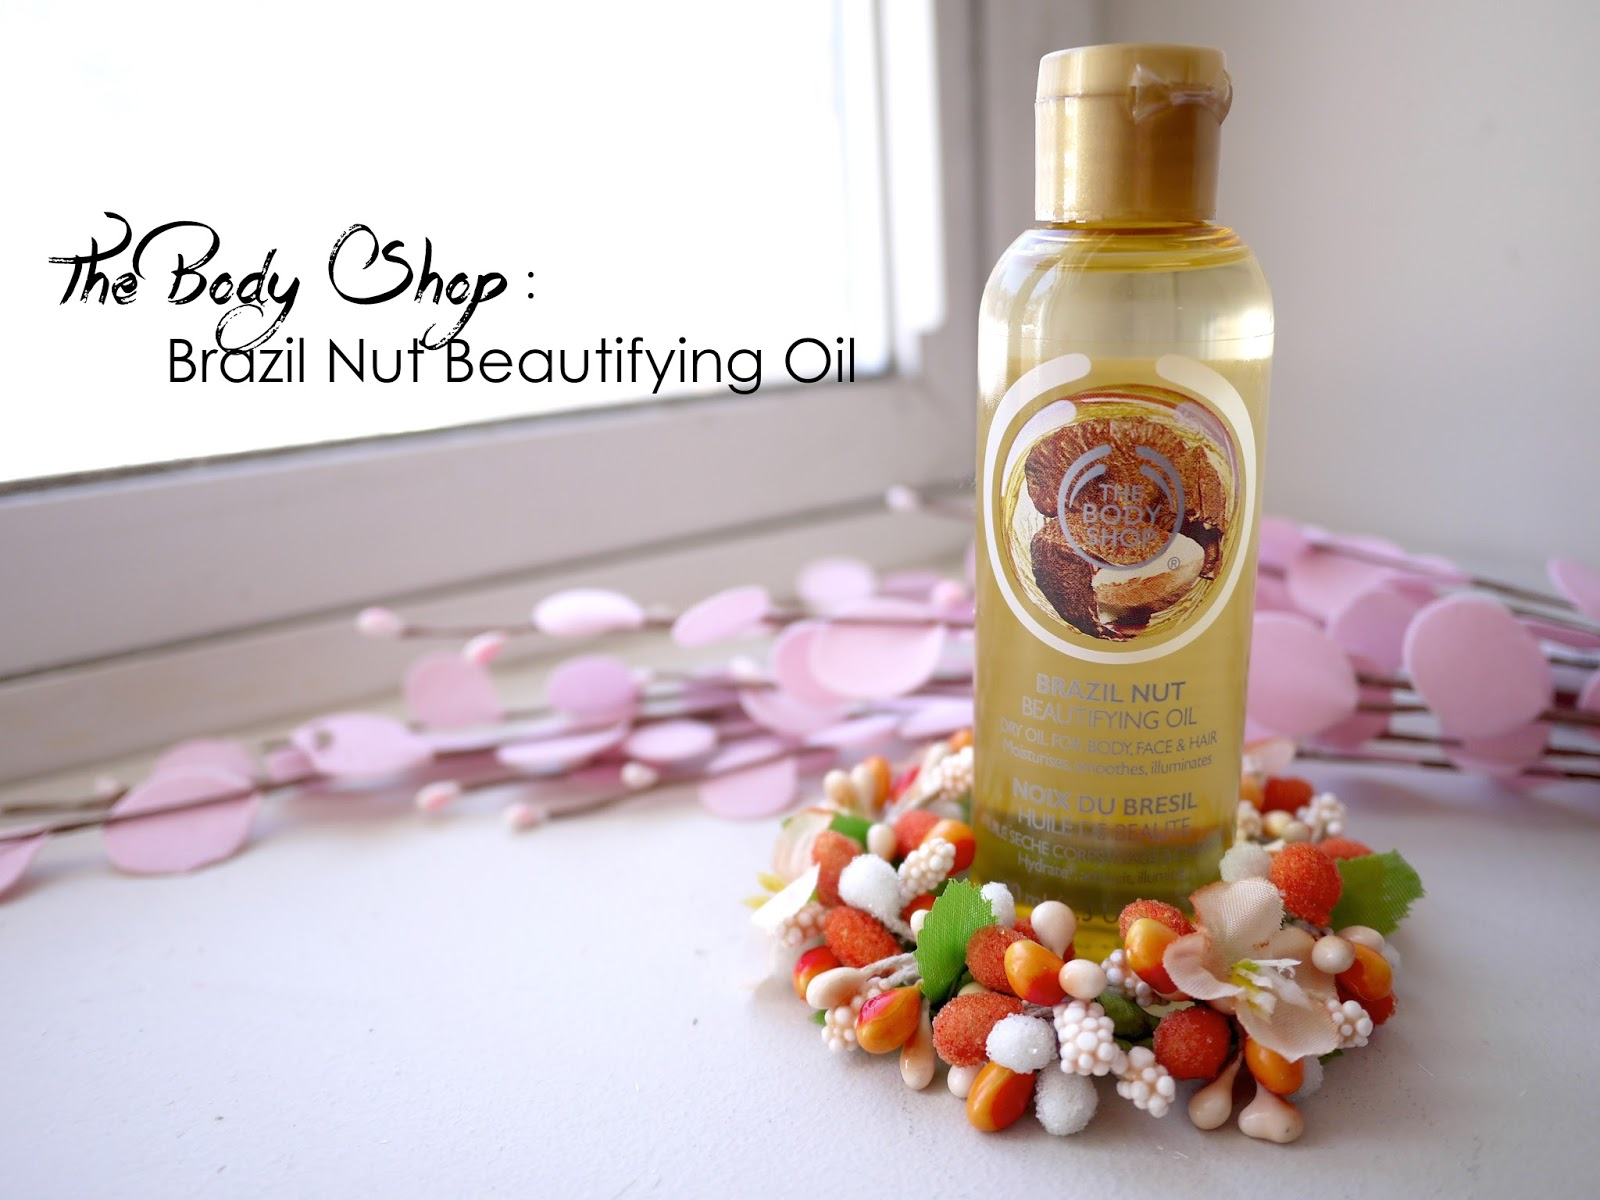 The Body Shop Brazil Nut Beautifying Oil review